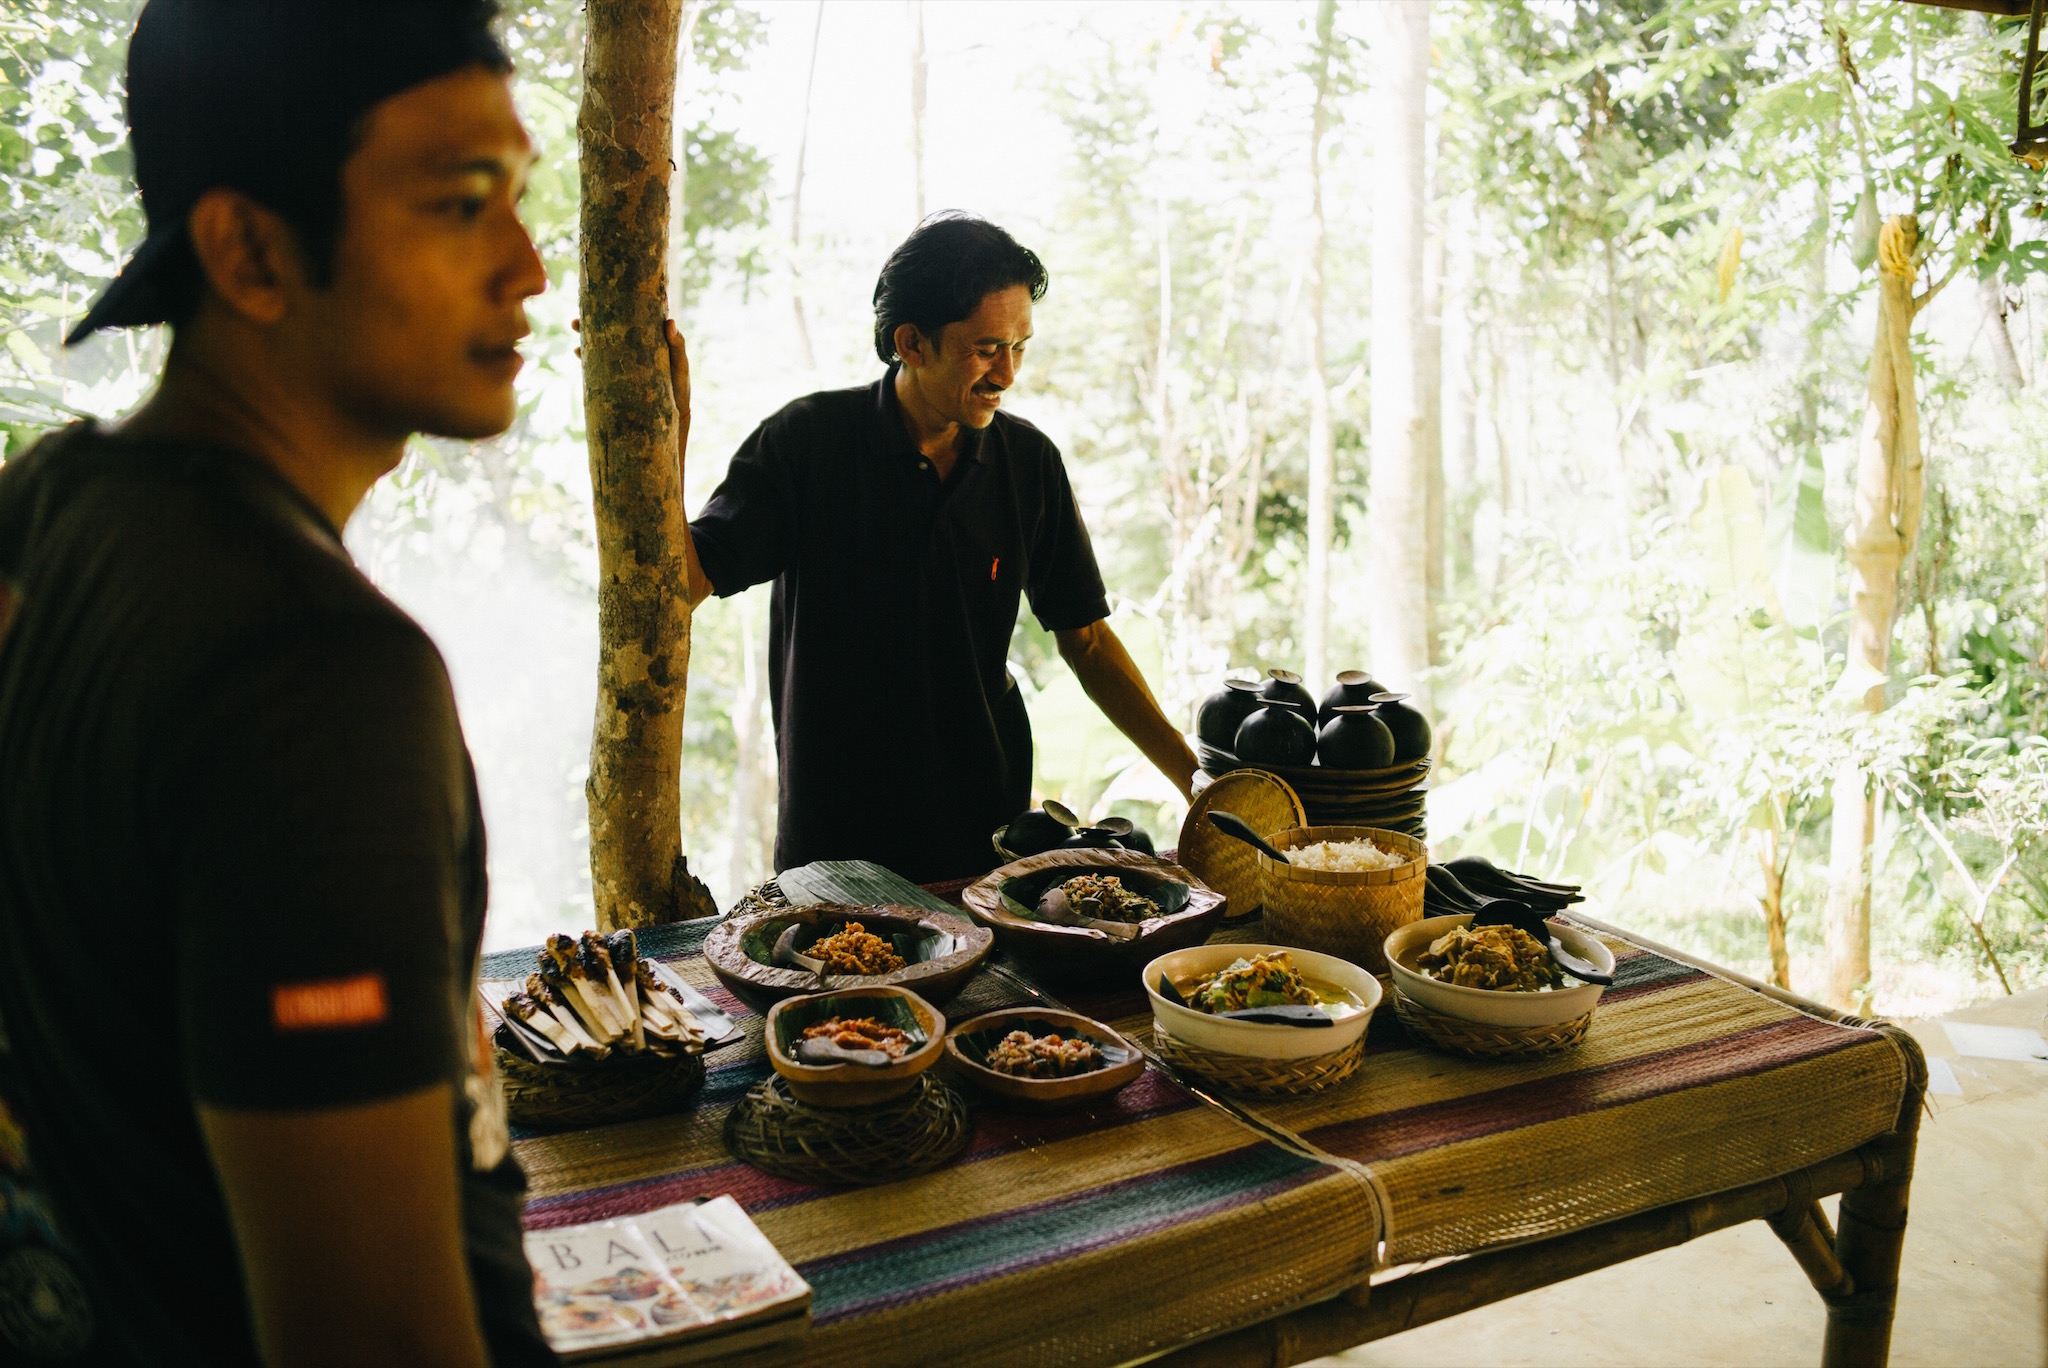 20160707_Bali_145916-35mm Summarit, Bali, Green Kitchen Cooking Class, Indonesia, Leica M Typ 240, Travel, VSCO Film.jpg